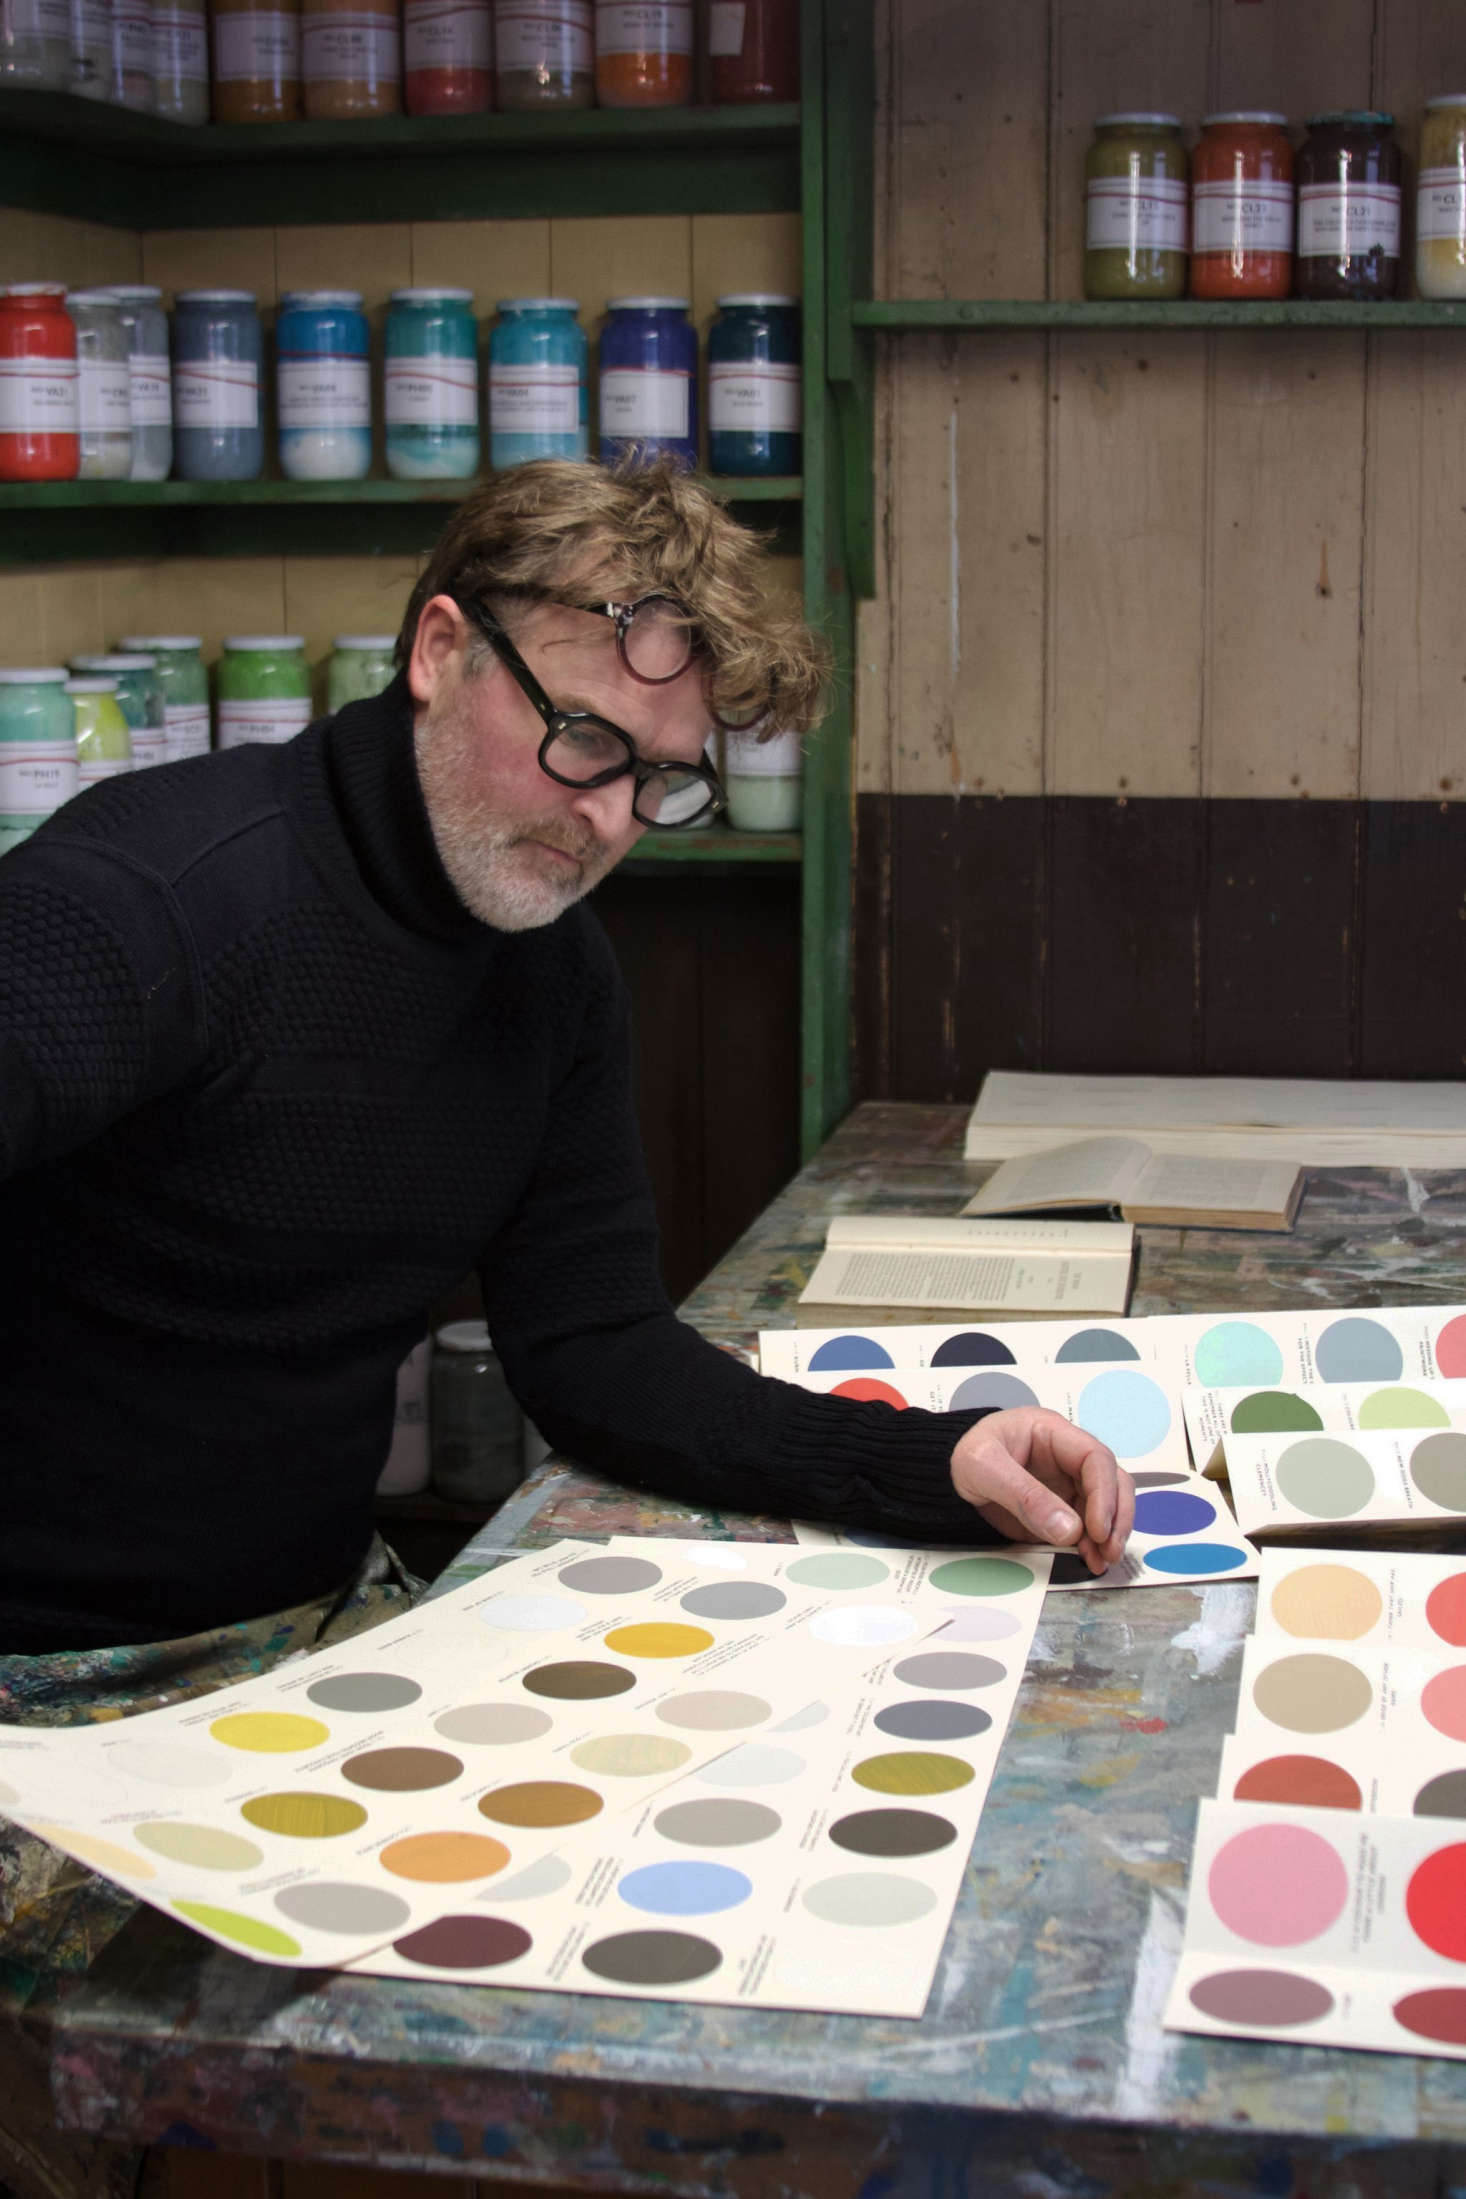 Simon March at work in his Lewes, East Sussex, shop.